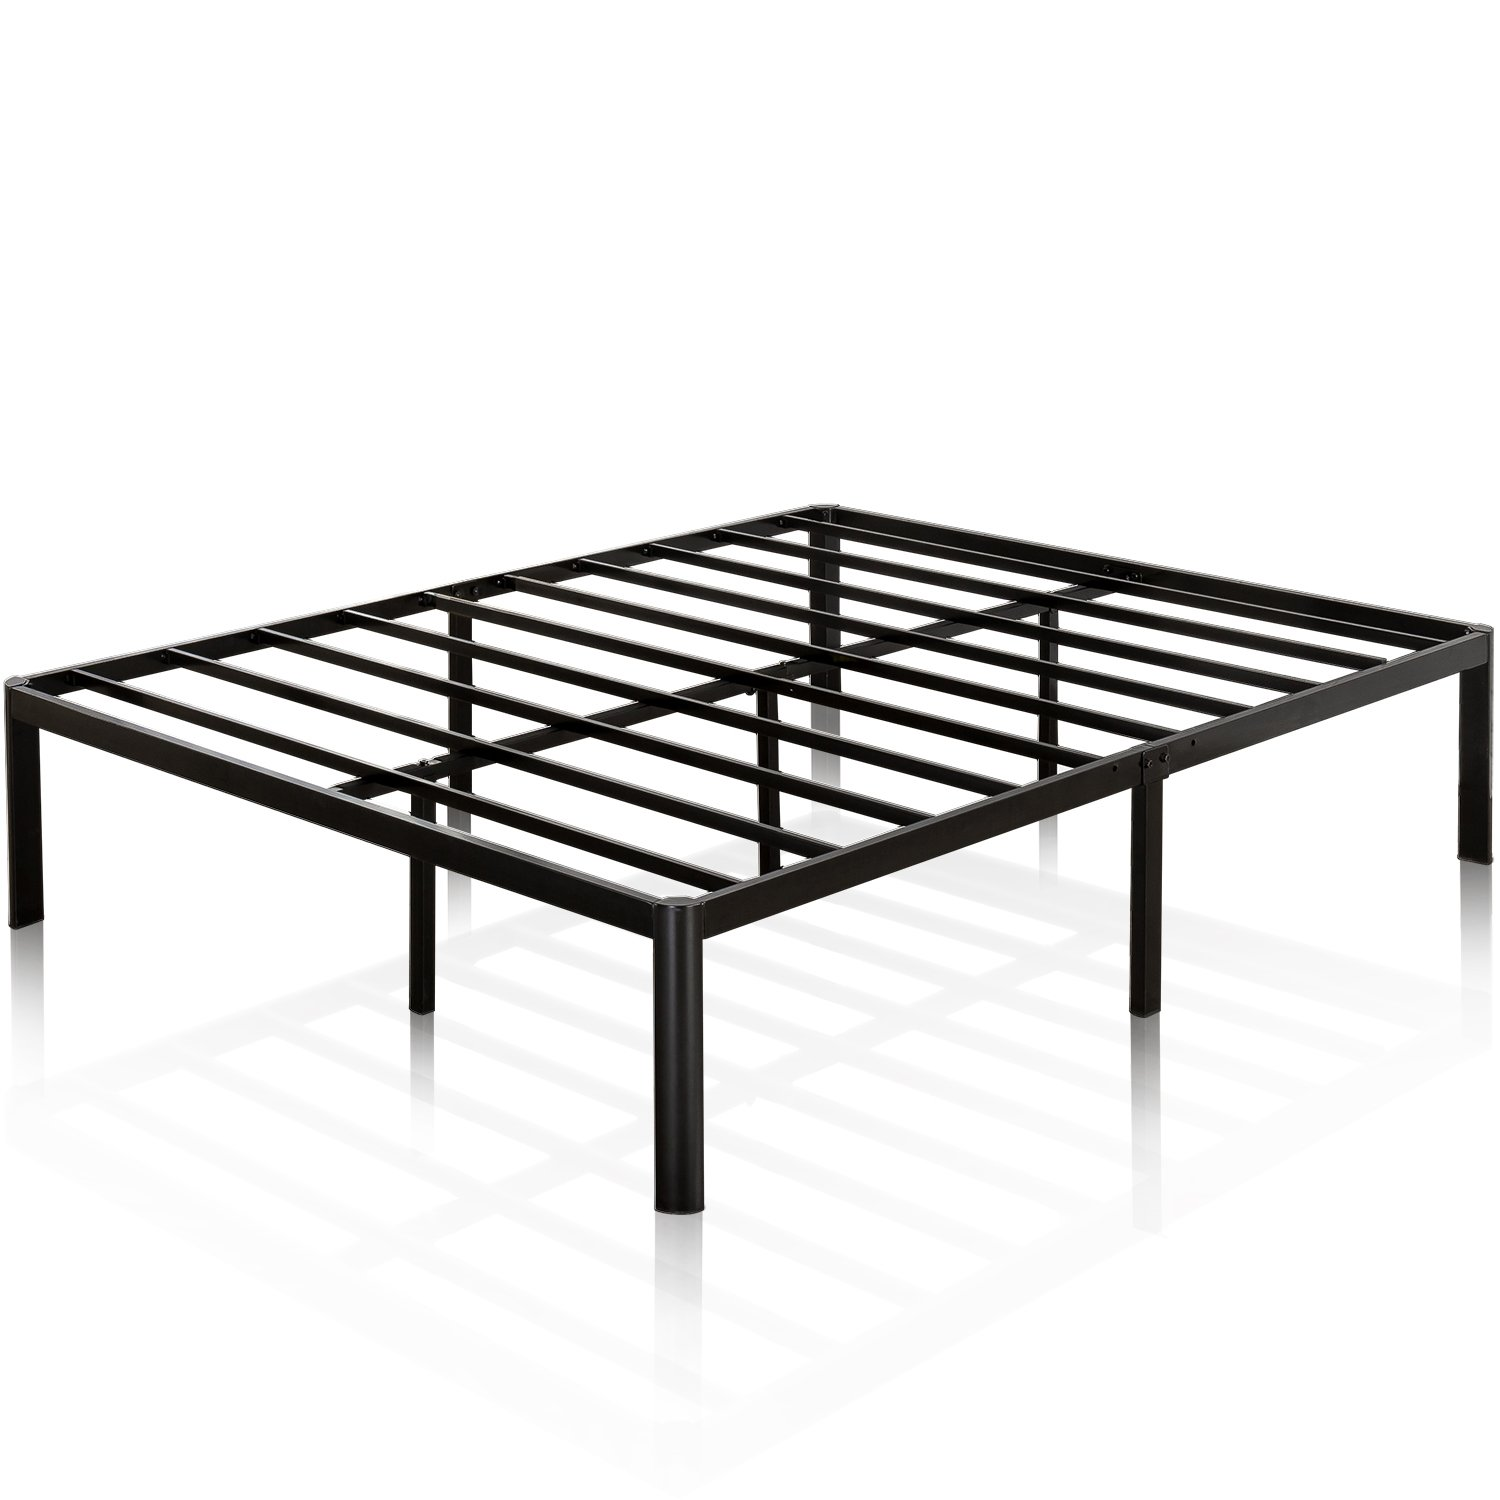 Zinus 16 Inch Metal Platform Bed Frame with Steel Slat Support, Mattress Foundation, Twin